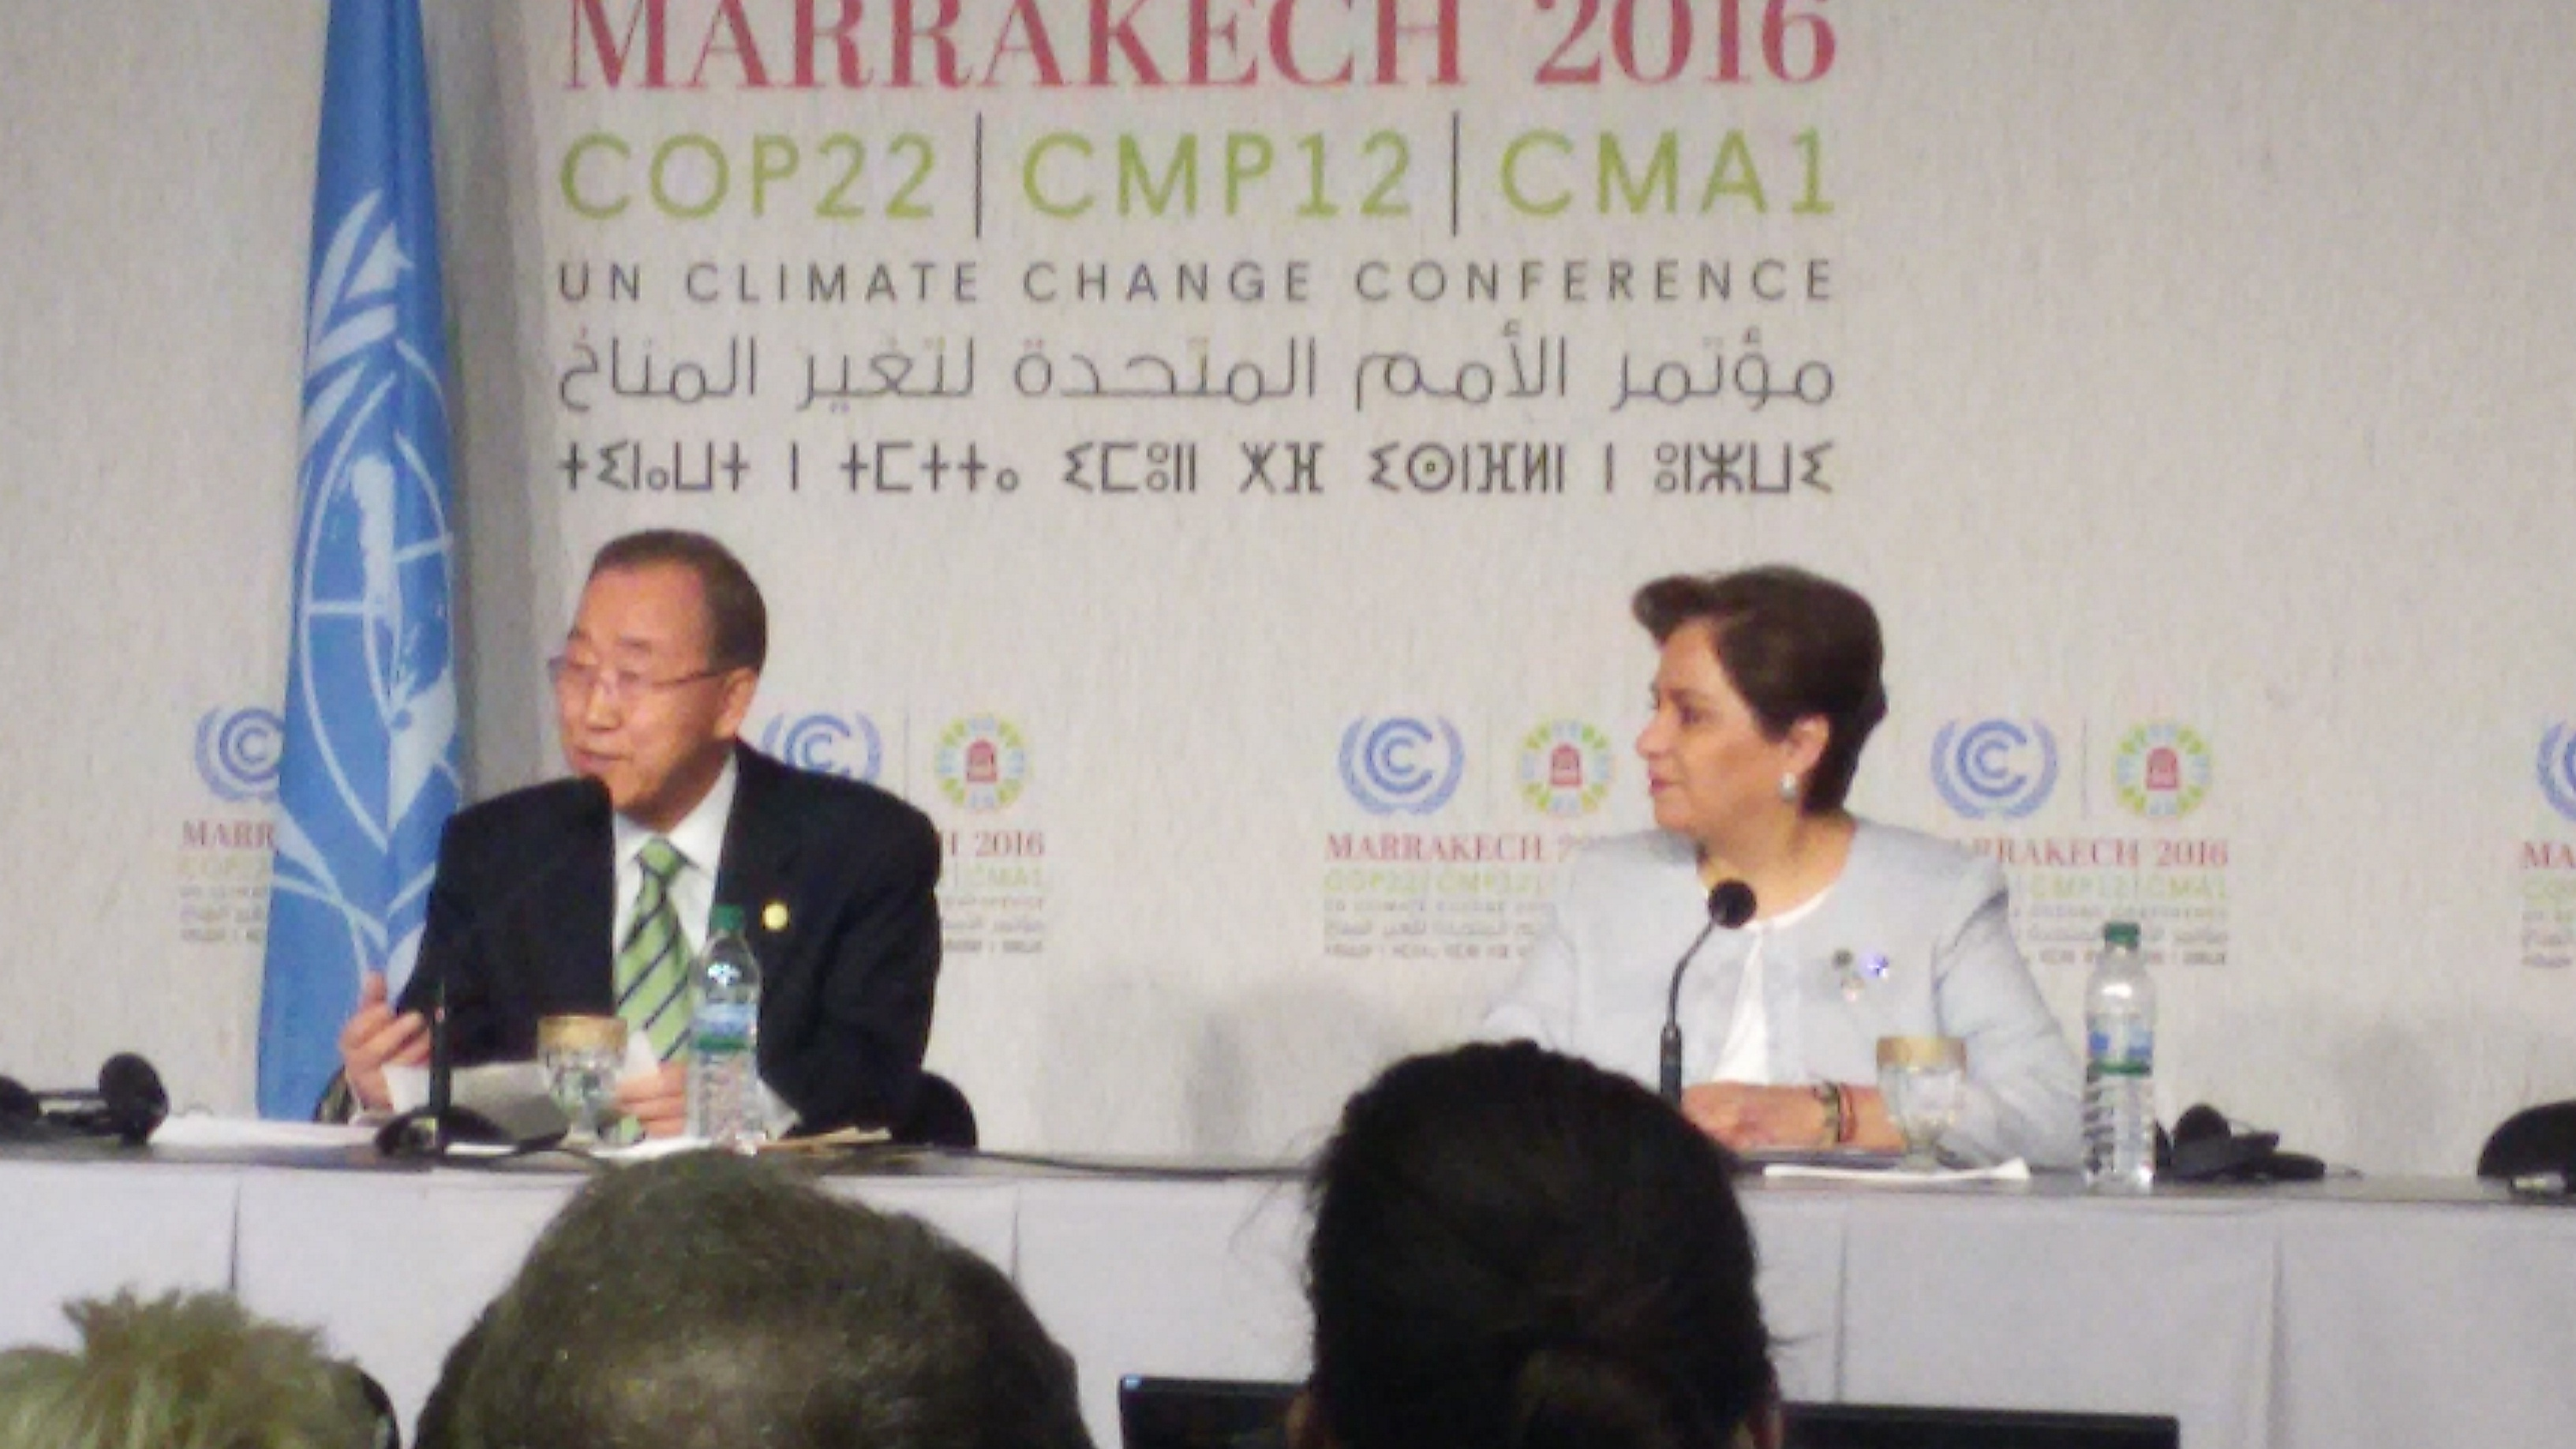 The UN Secretary General Ban Ki-moon and Patricia Espinosa, UNFCCC Executive Secretary